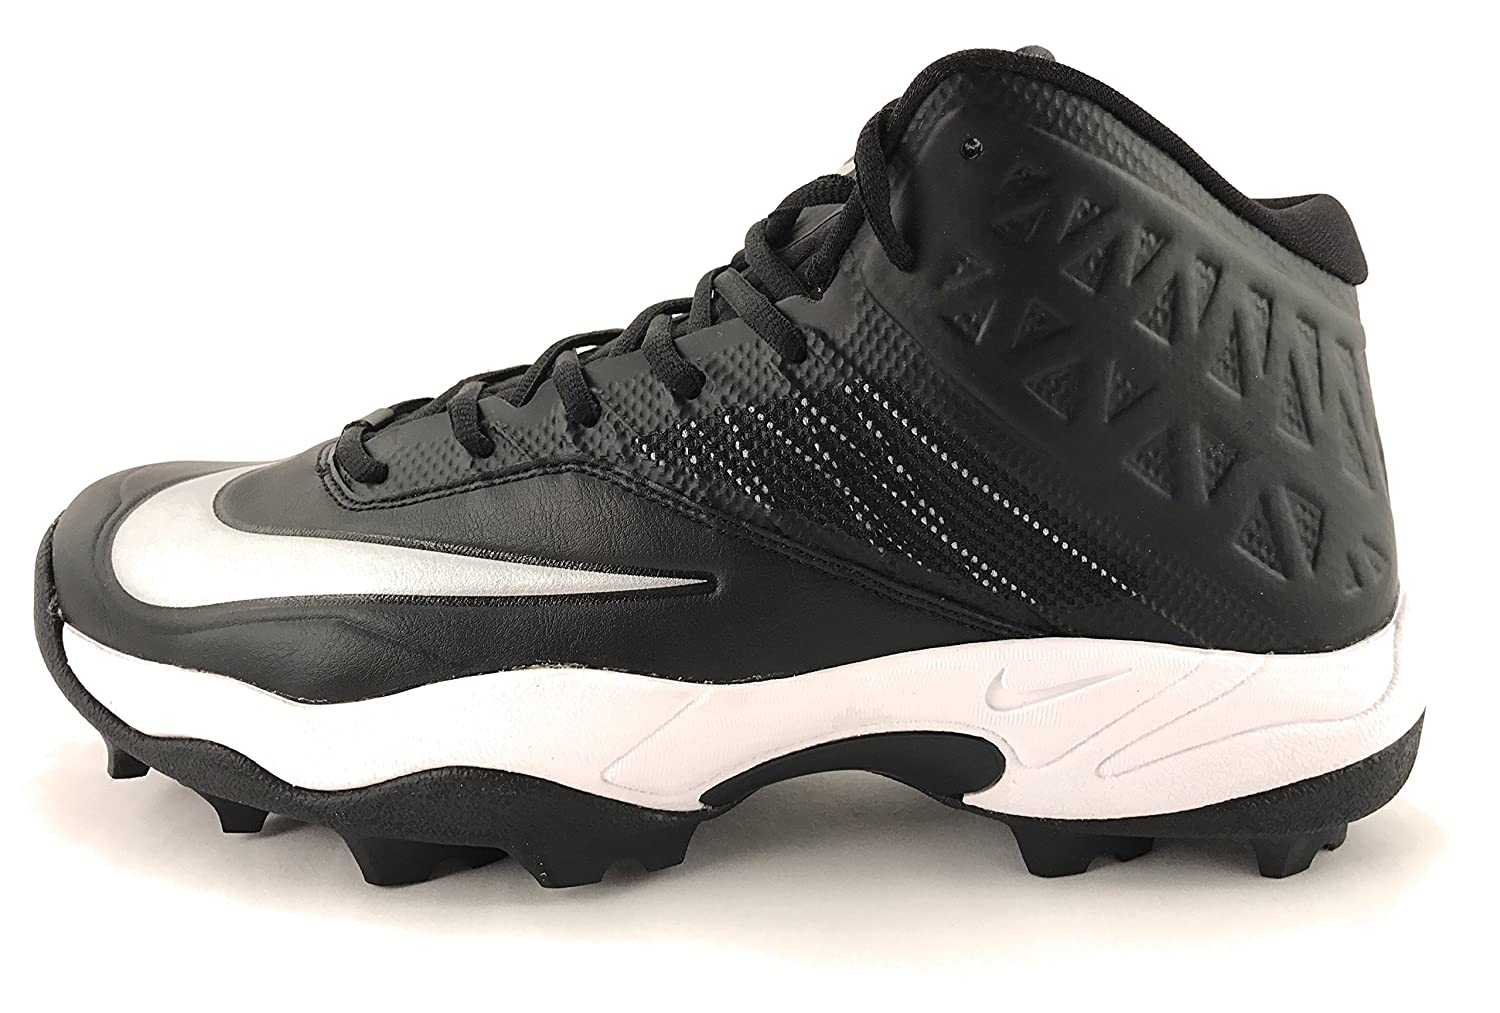 Nike メンズ B00XNVNMCQ 16 D(M) US|Black/Metallic Silver Black/Metallic Silver 16 D(M) US